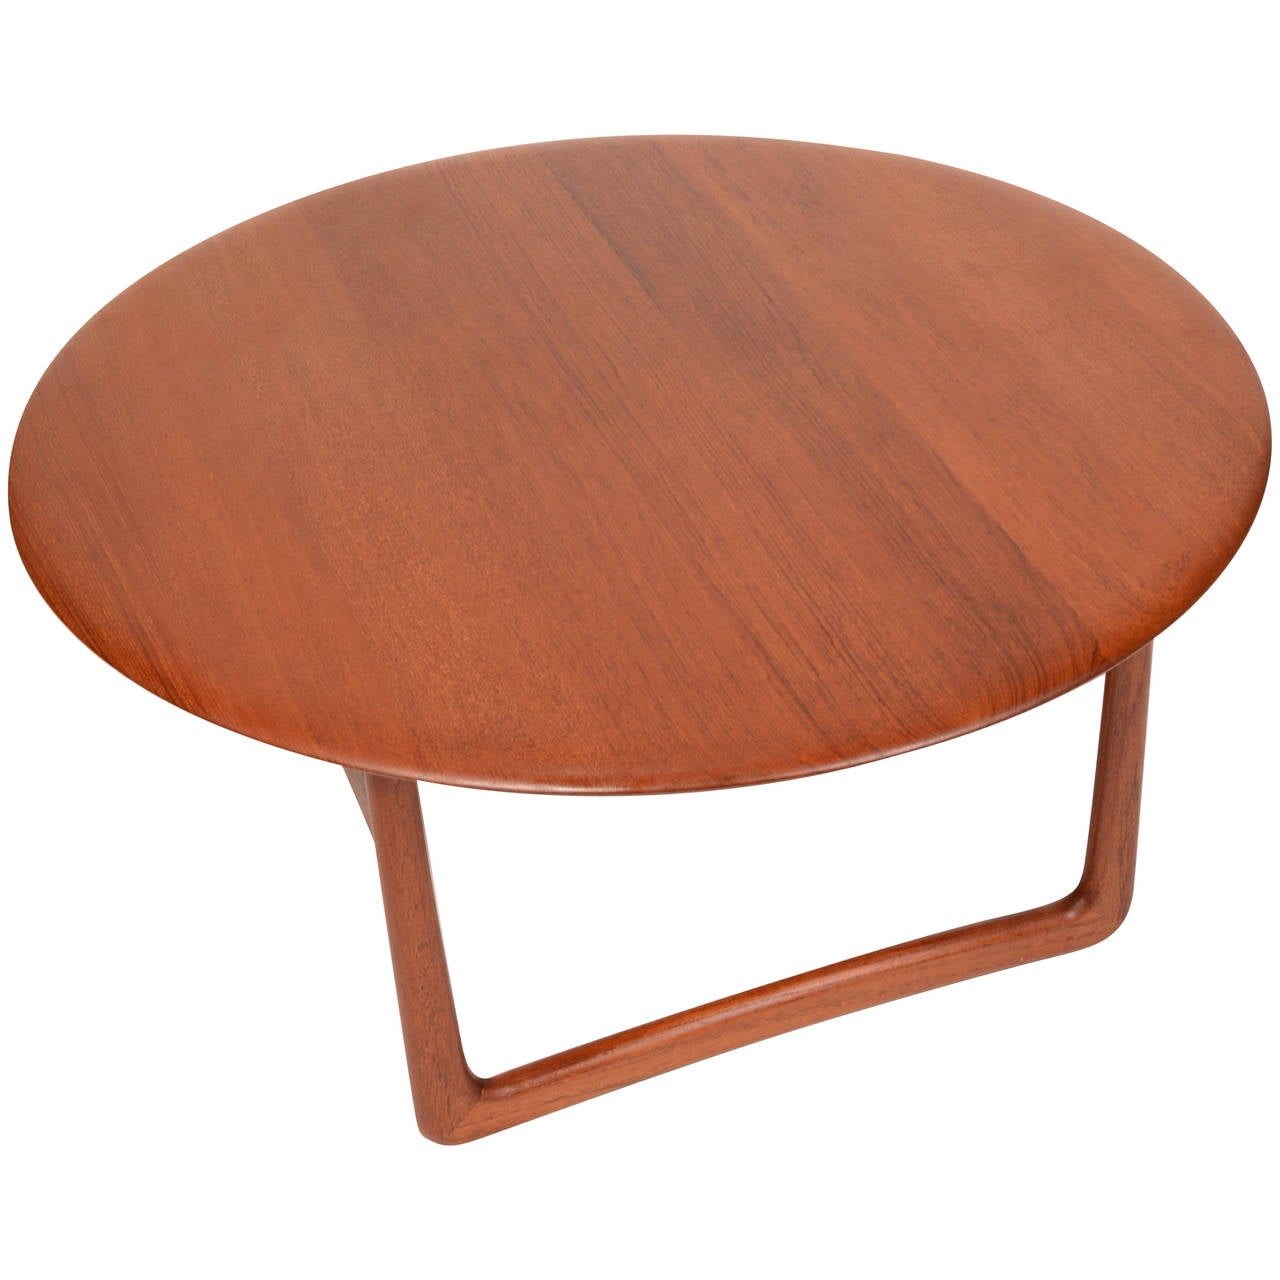 Solid teak danish modern round coffee table by povl dinesen for france and s n at 1stdibs Solid teak coffee table